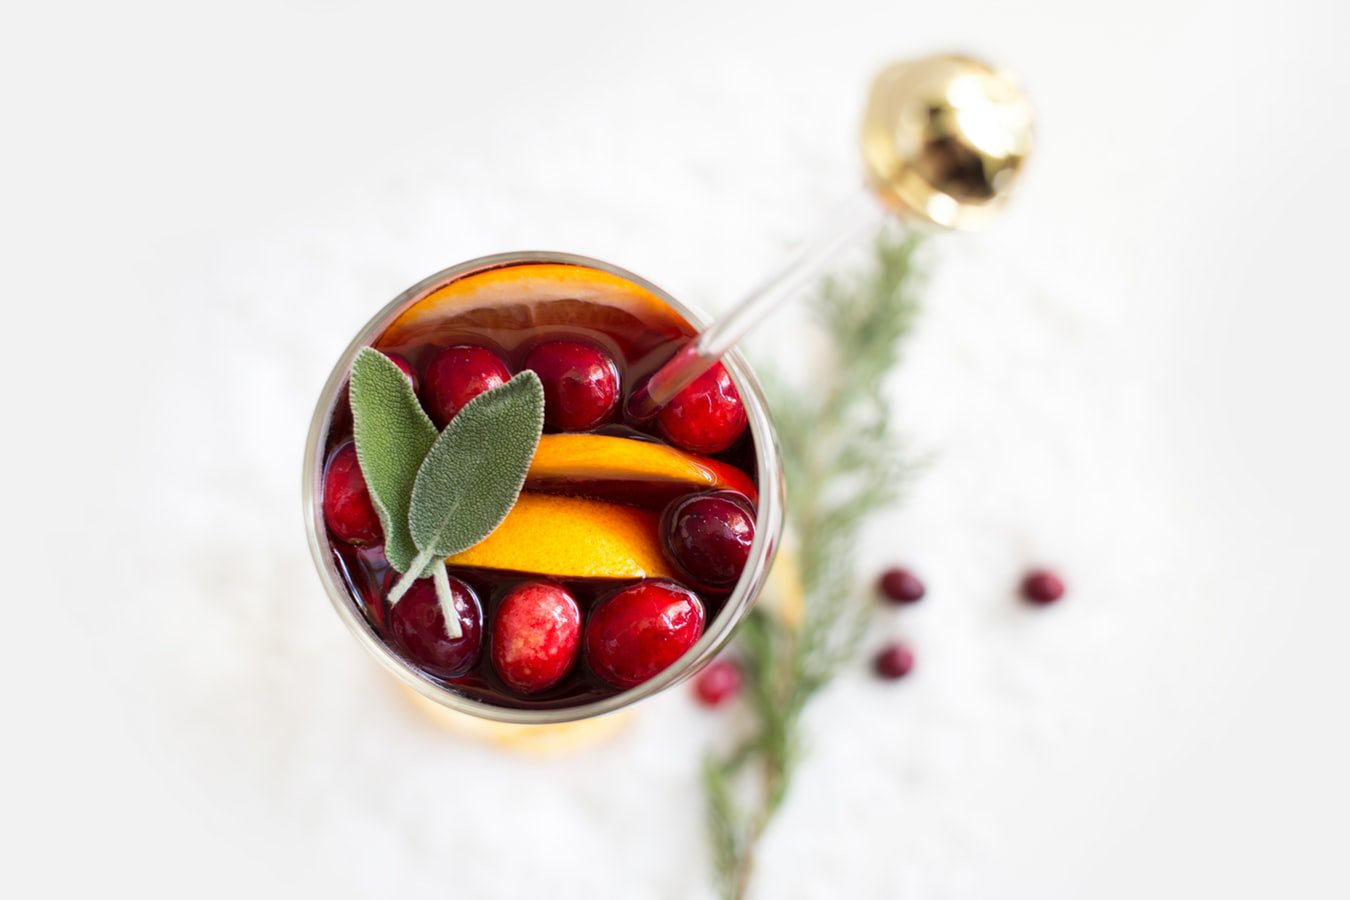 A glass of mulled wine. Mulled wine is a festive and fun drink to spice up the fall season